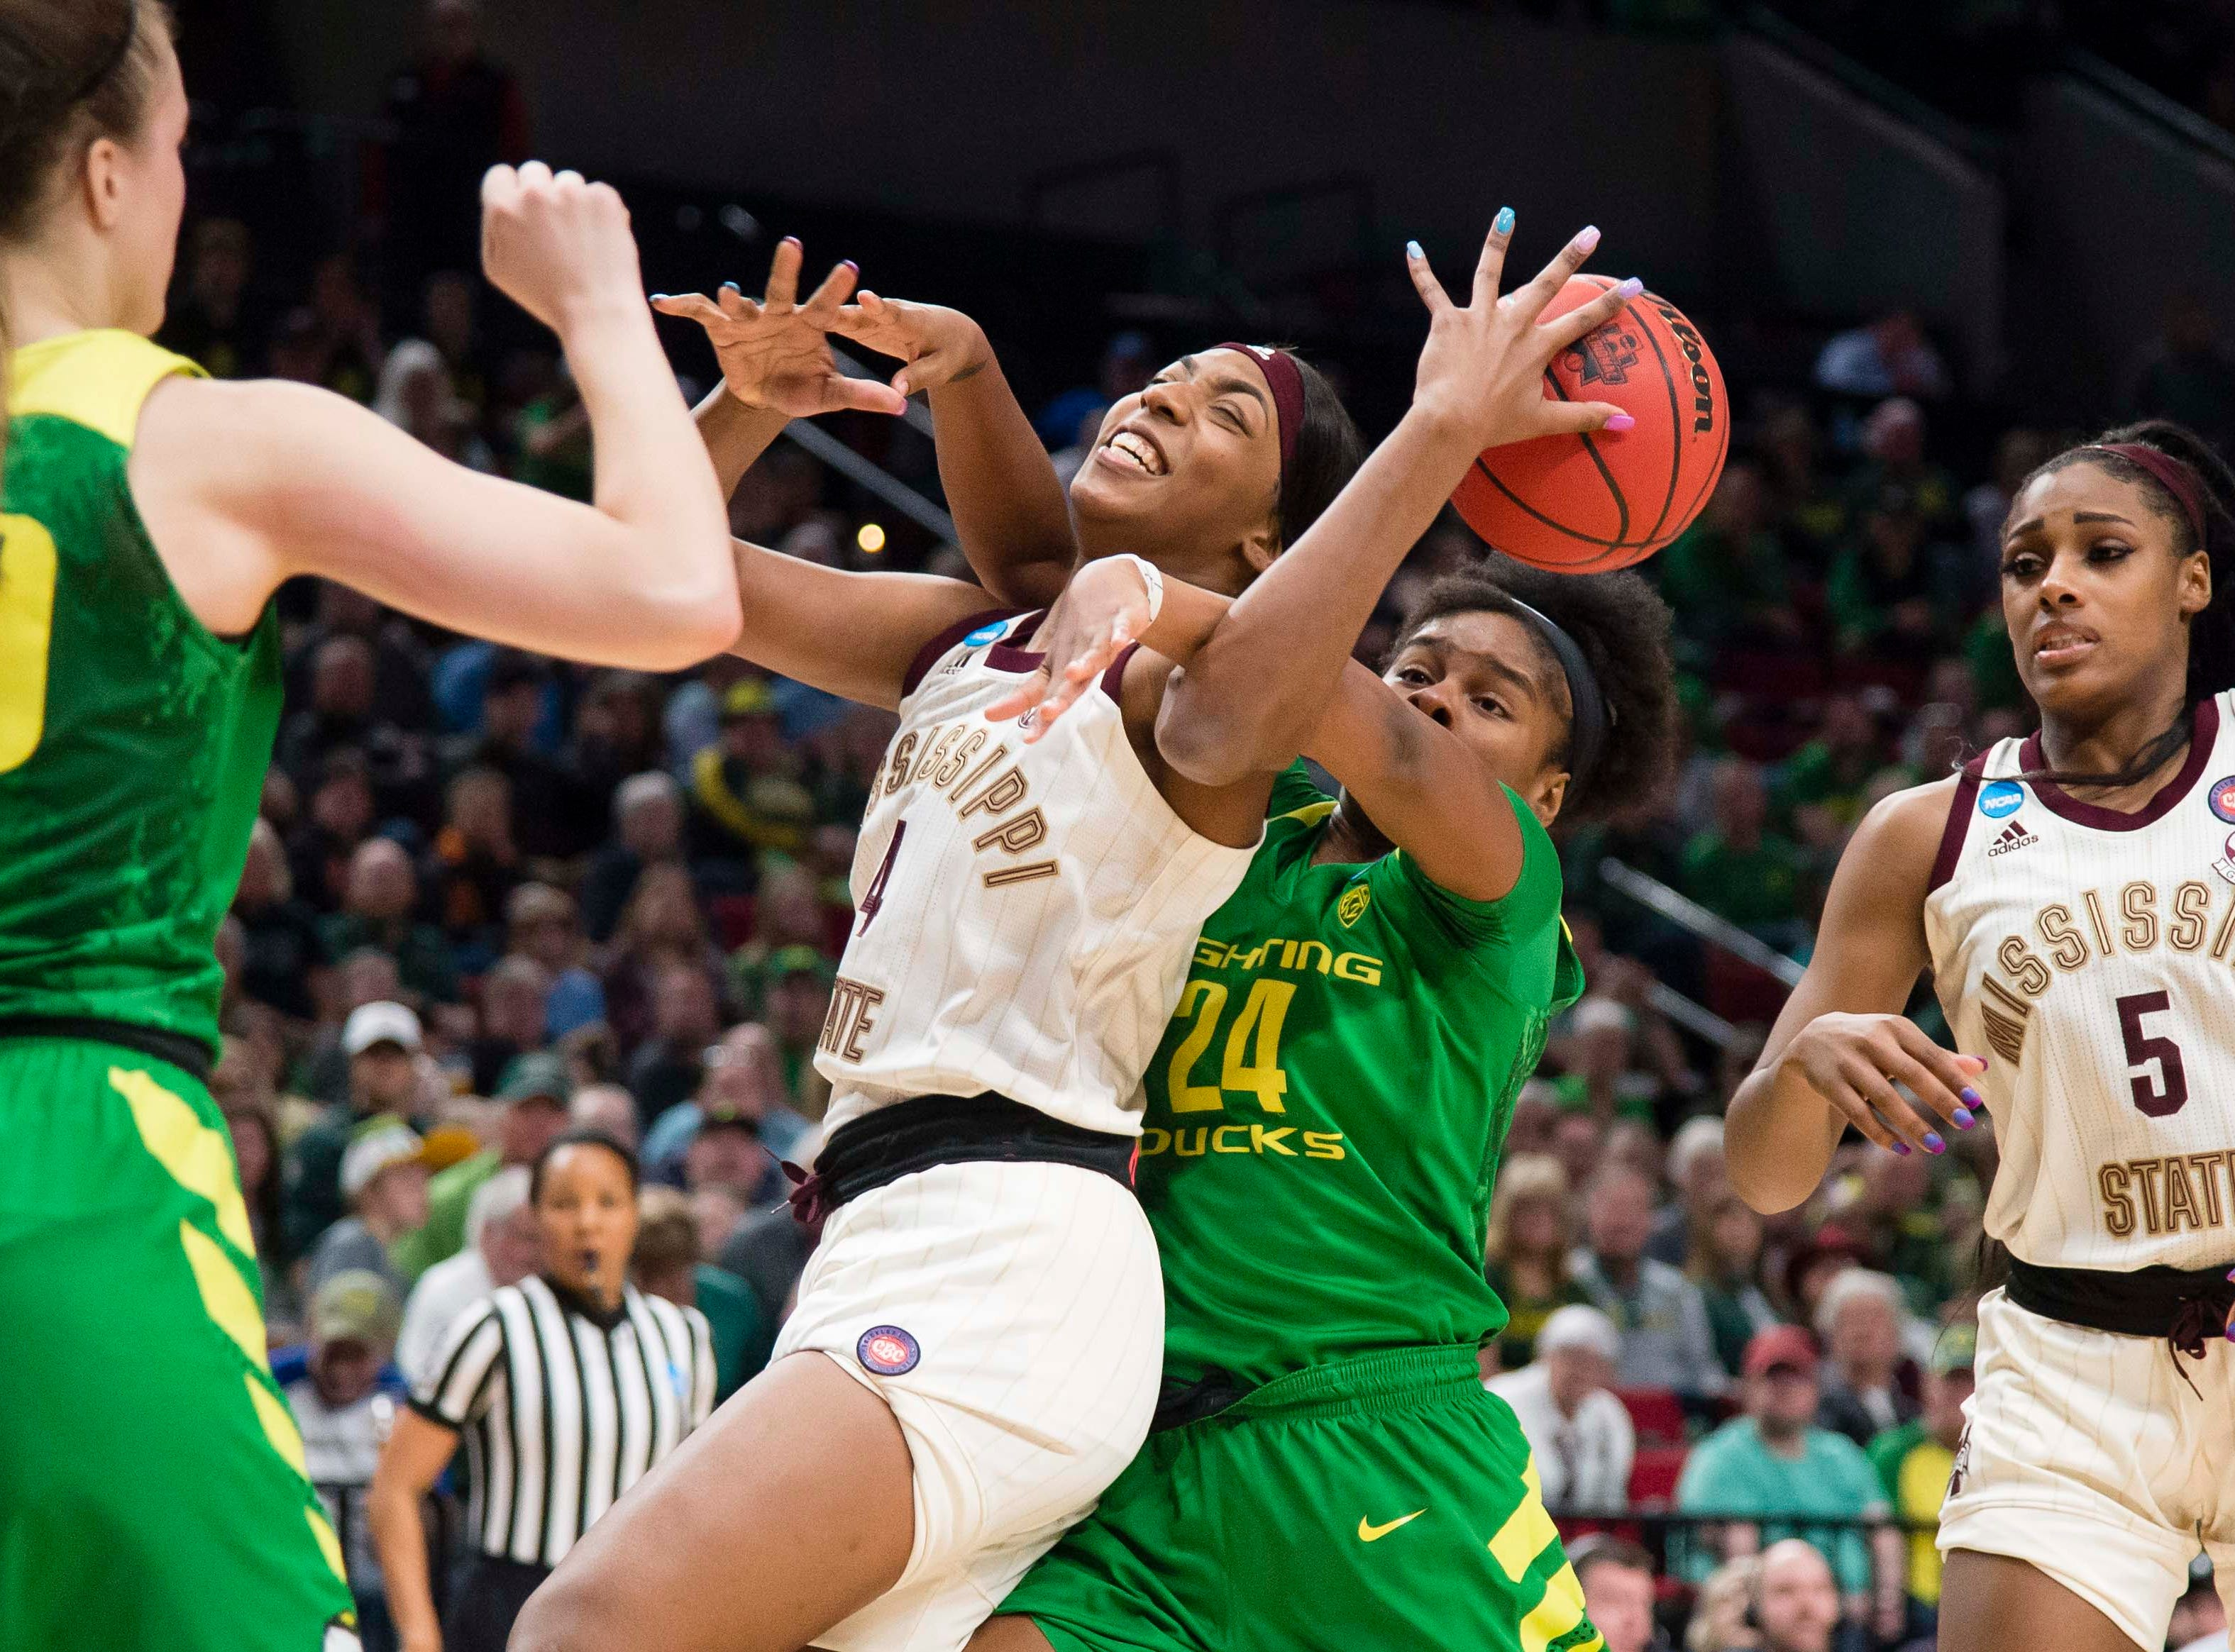 Mississippi State Bulldogs forward Jessika Carter (4) and Oregon Ducks forward Ruthy Hebard (24) battle for a rebound during the second half in the championship game of the Portland regional in the women's 2019 NCAA Tournament at Moda Center. The Oregon Ducks beat the Mississippi State Bulldogs 88-84.